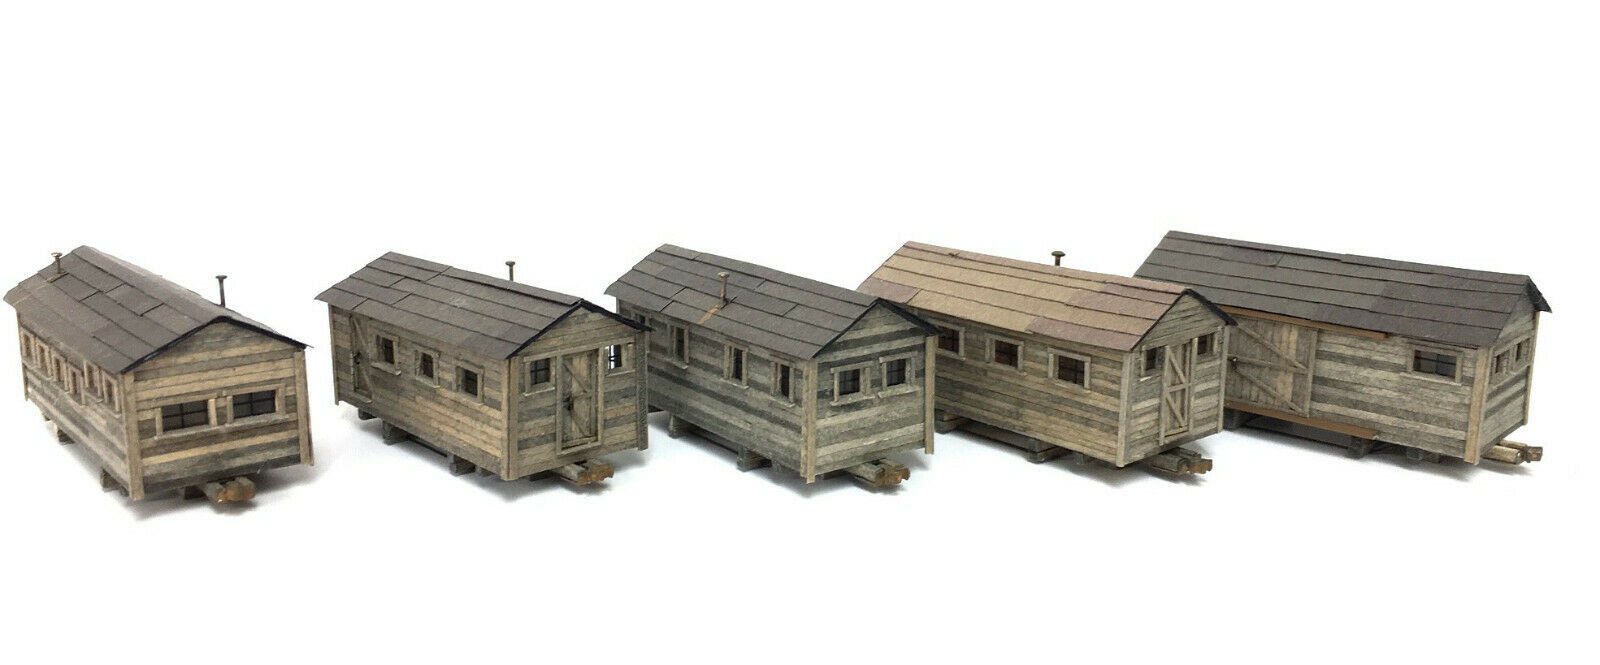 N Scale - KMP Models - N-Camp Cars - Structure, Log Camp Cars - Industrial Structures